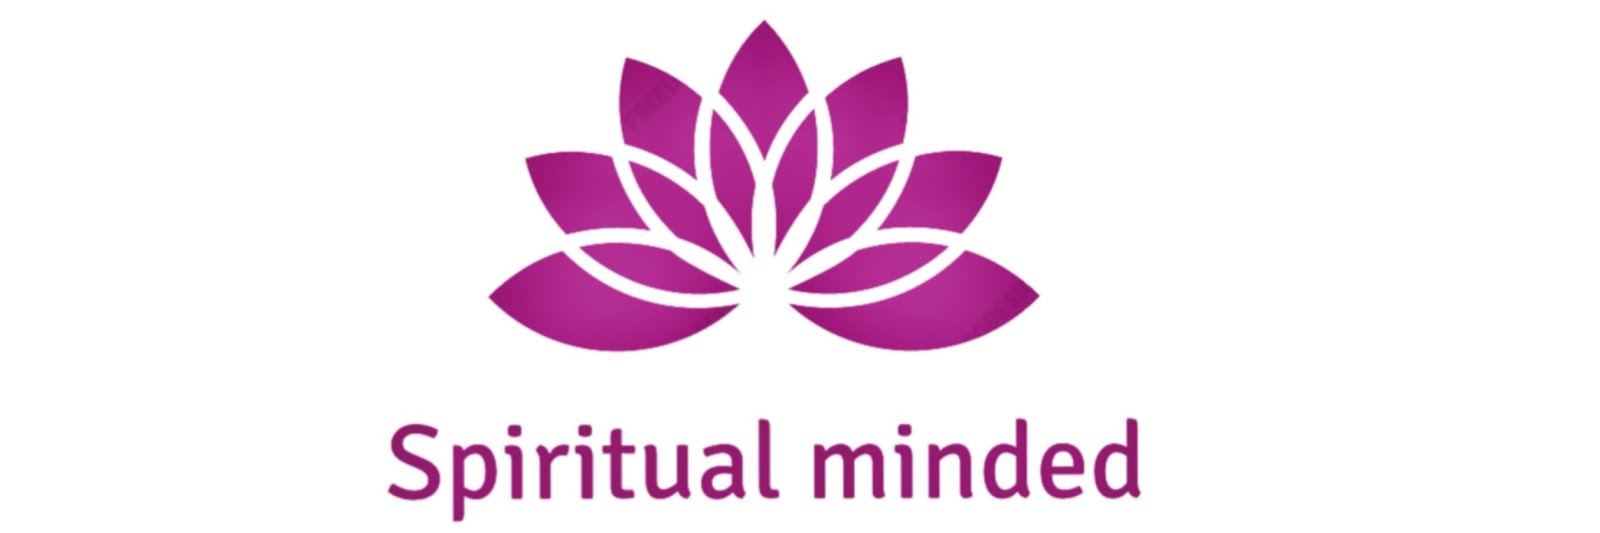 Spiritual Minded | Motivation, Positive thoughts, Success, Spirituality